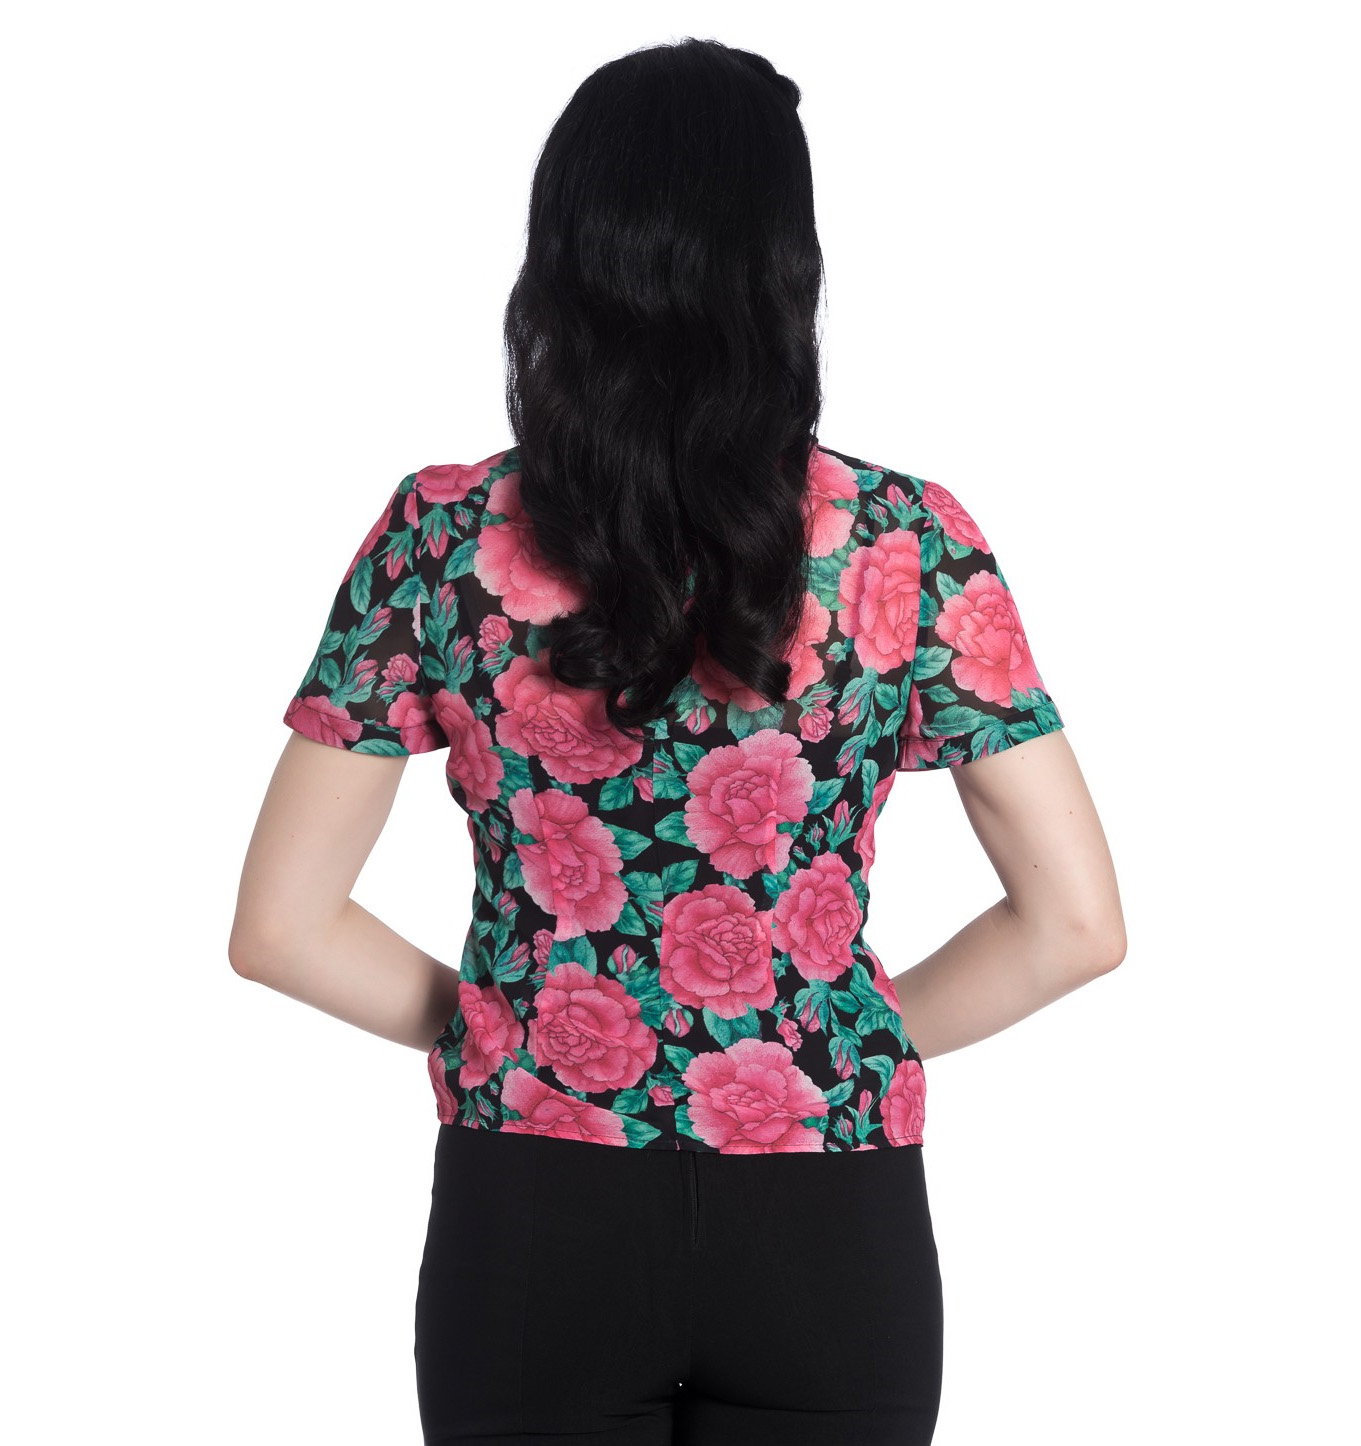 Hell-Bunny-Shirt-Top-Flowers-Roses-EDEN-ROSE-Black-Pink-Blouse-All-Sizes thumbnail 5